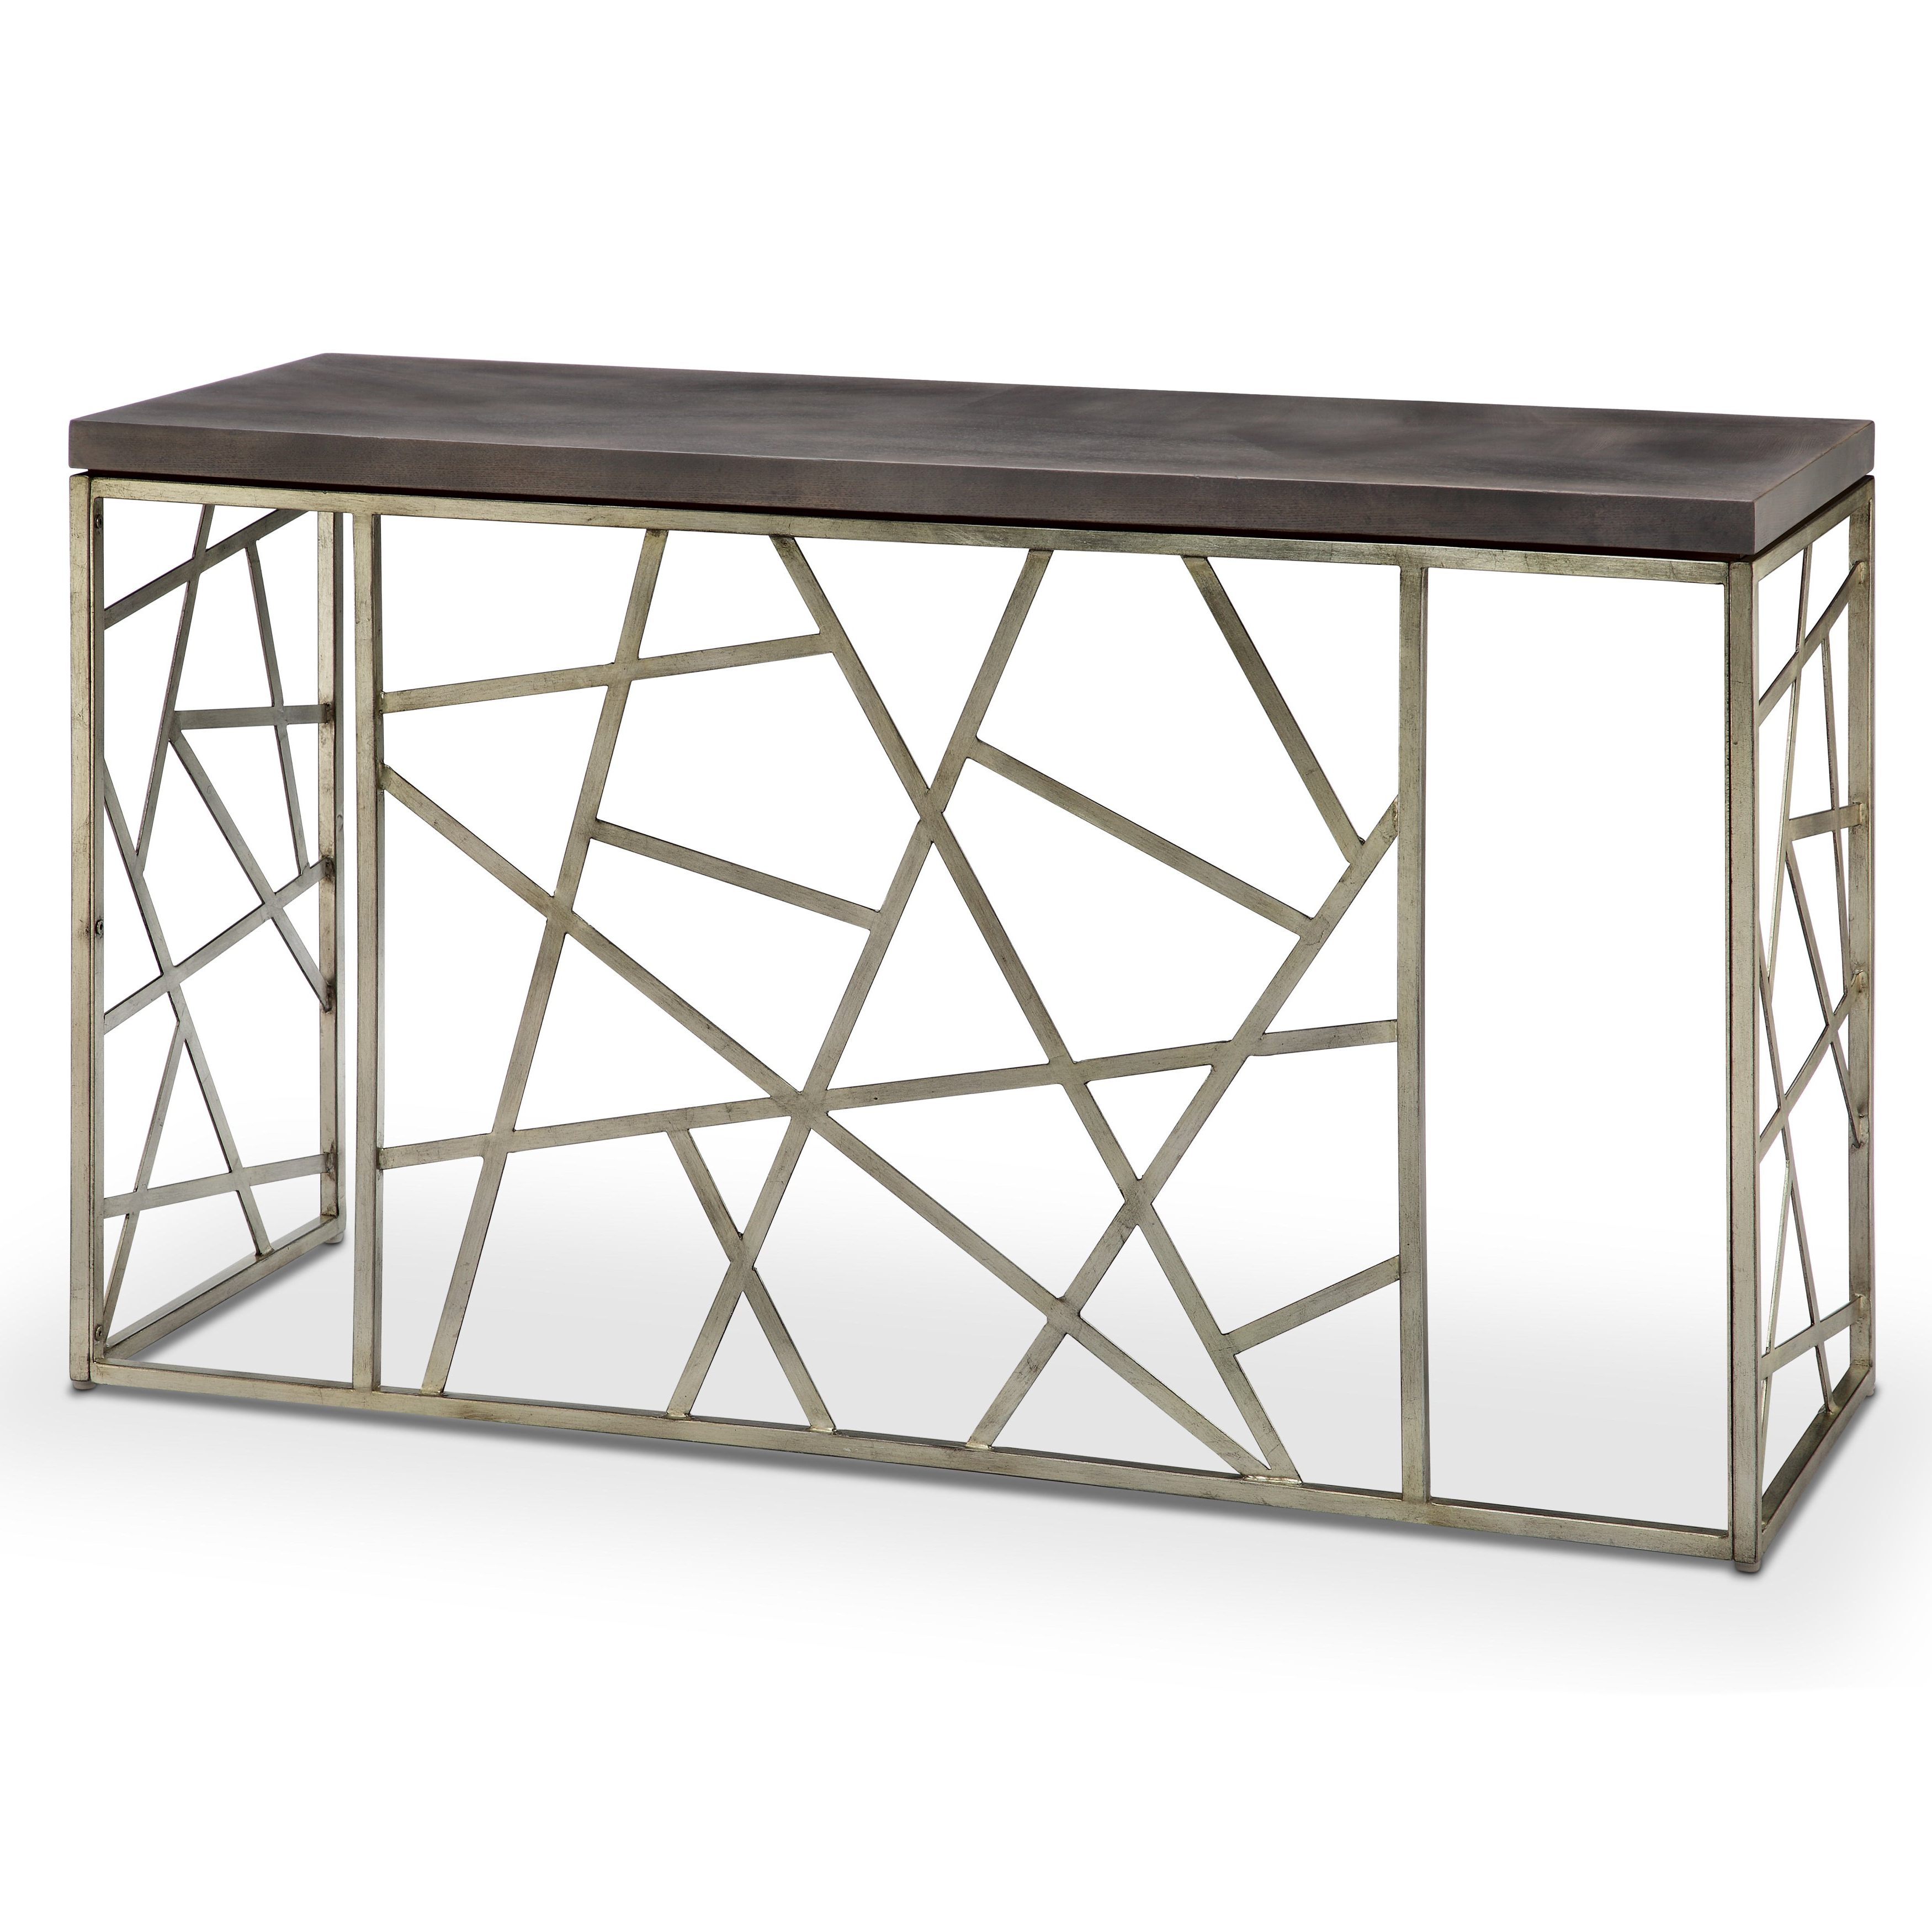 Famous Tribeca Contemporary Distressed Silver And Smoke Grey Coffee Tables Intended For Tribeca Contemporary Distressed Silver And Smoke Grey Entryway Table (View 6 of 20)